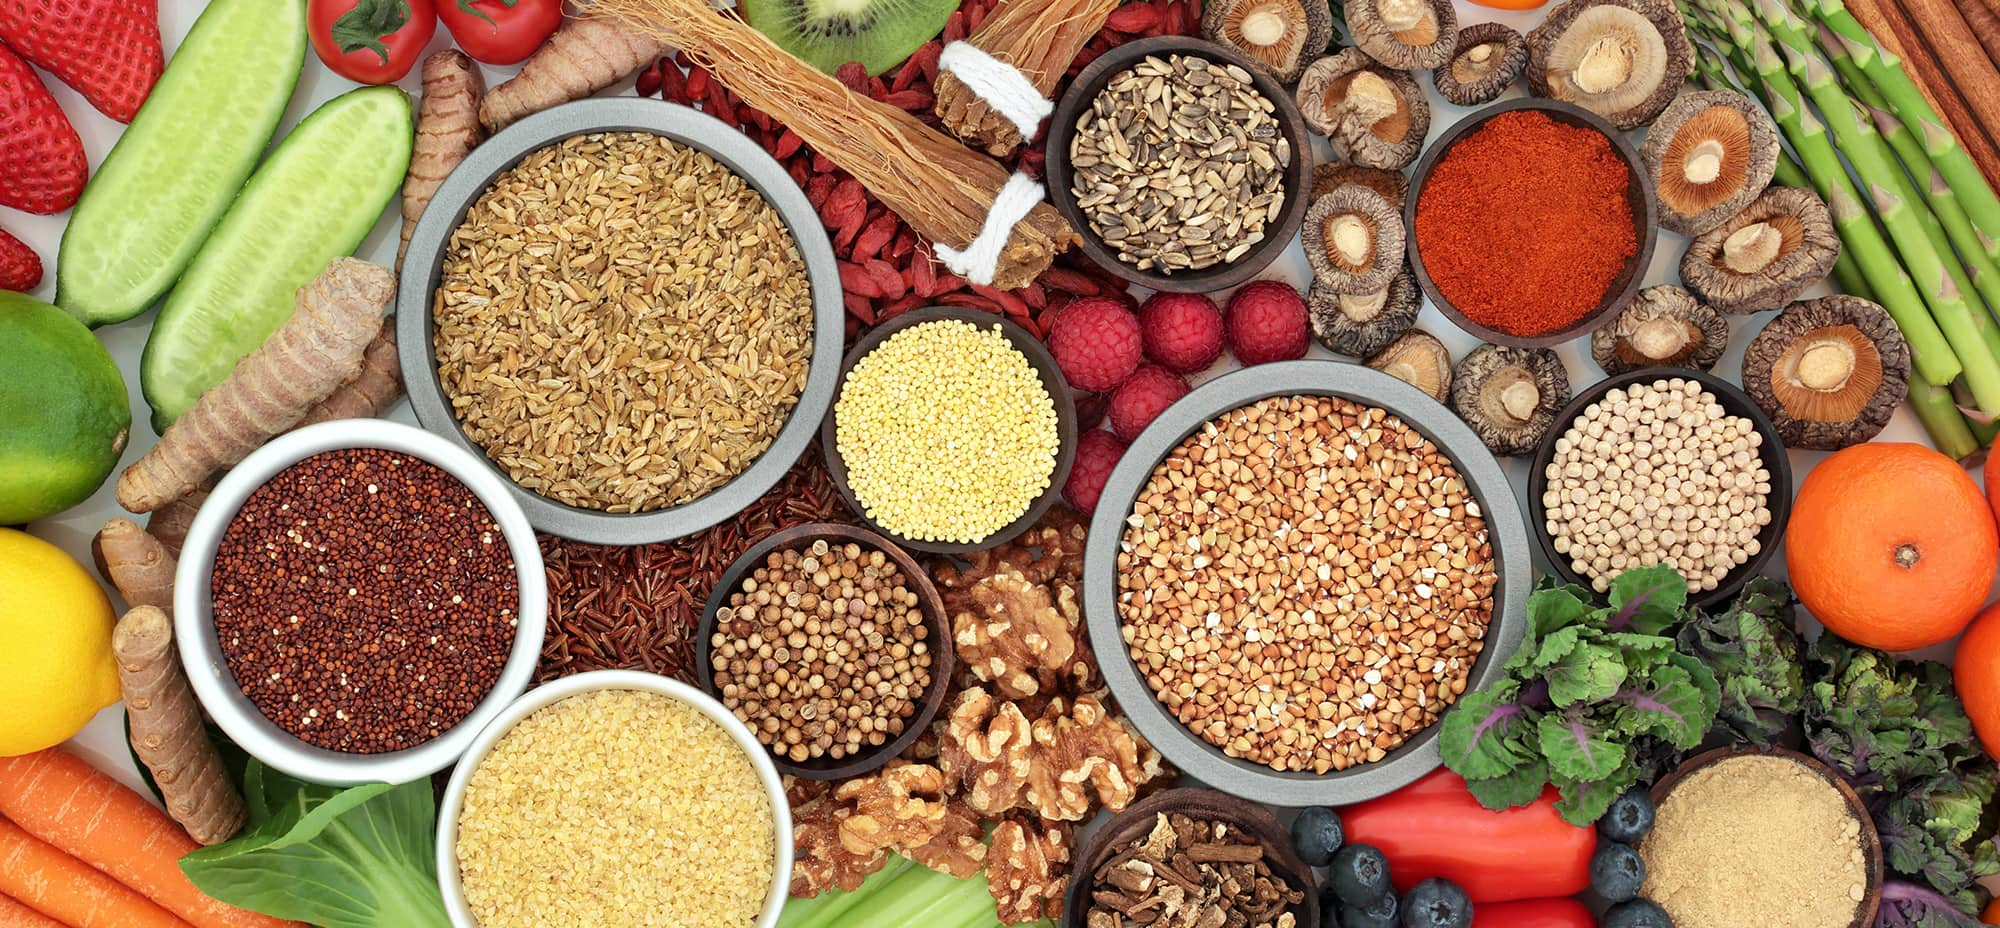 Different grains are pictured which meet various dietary requirements